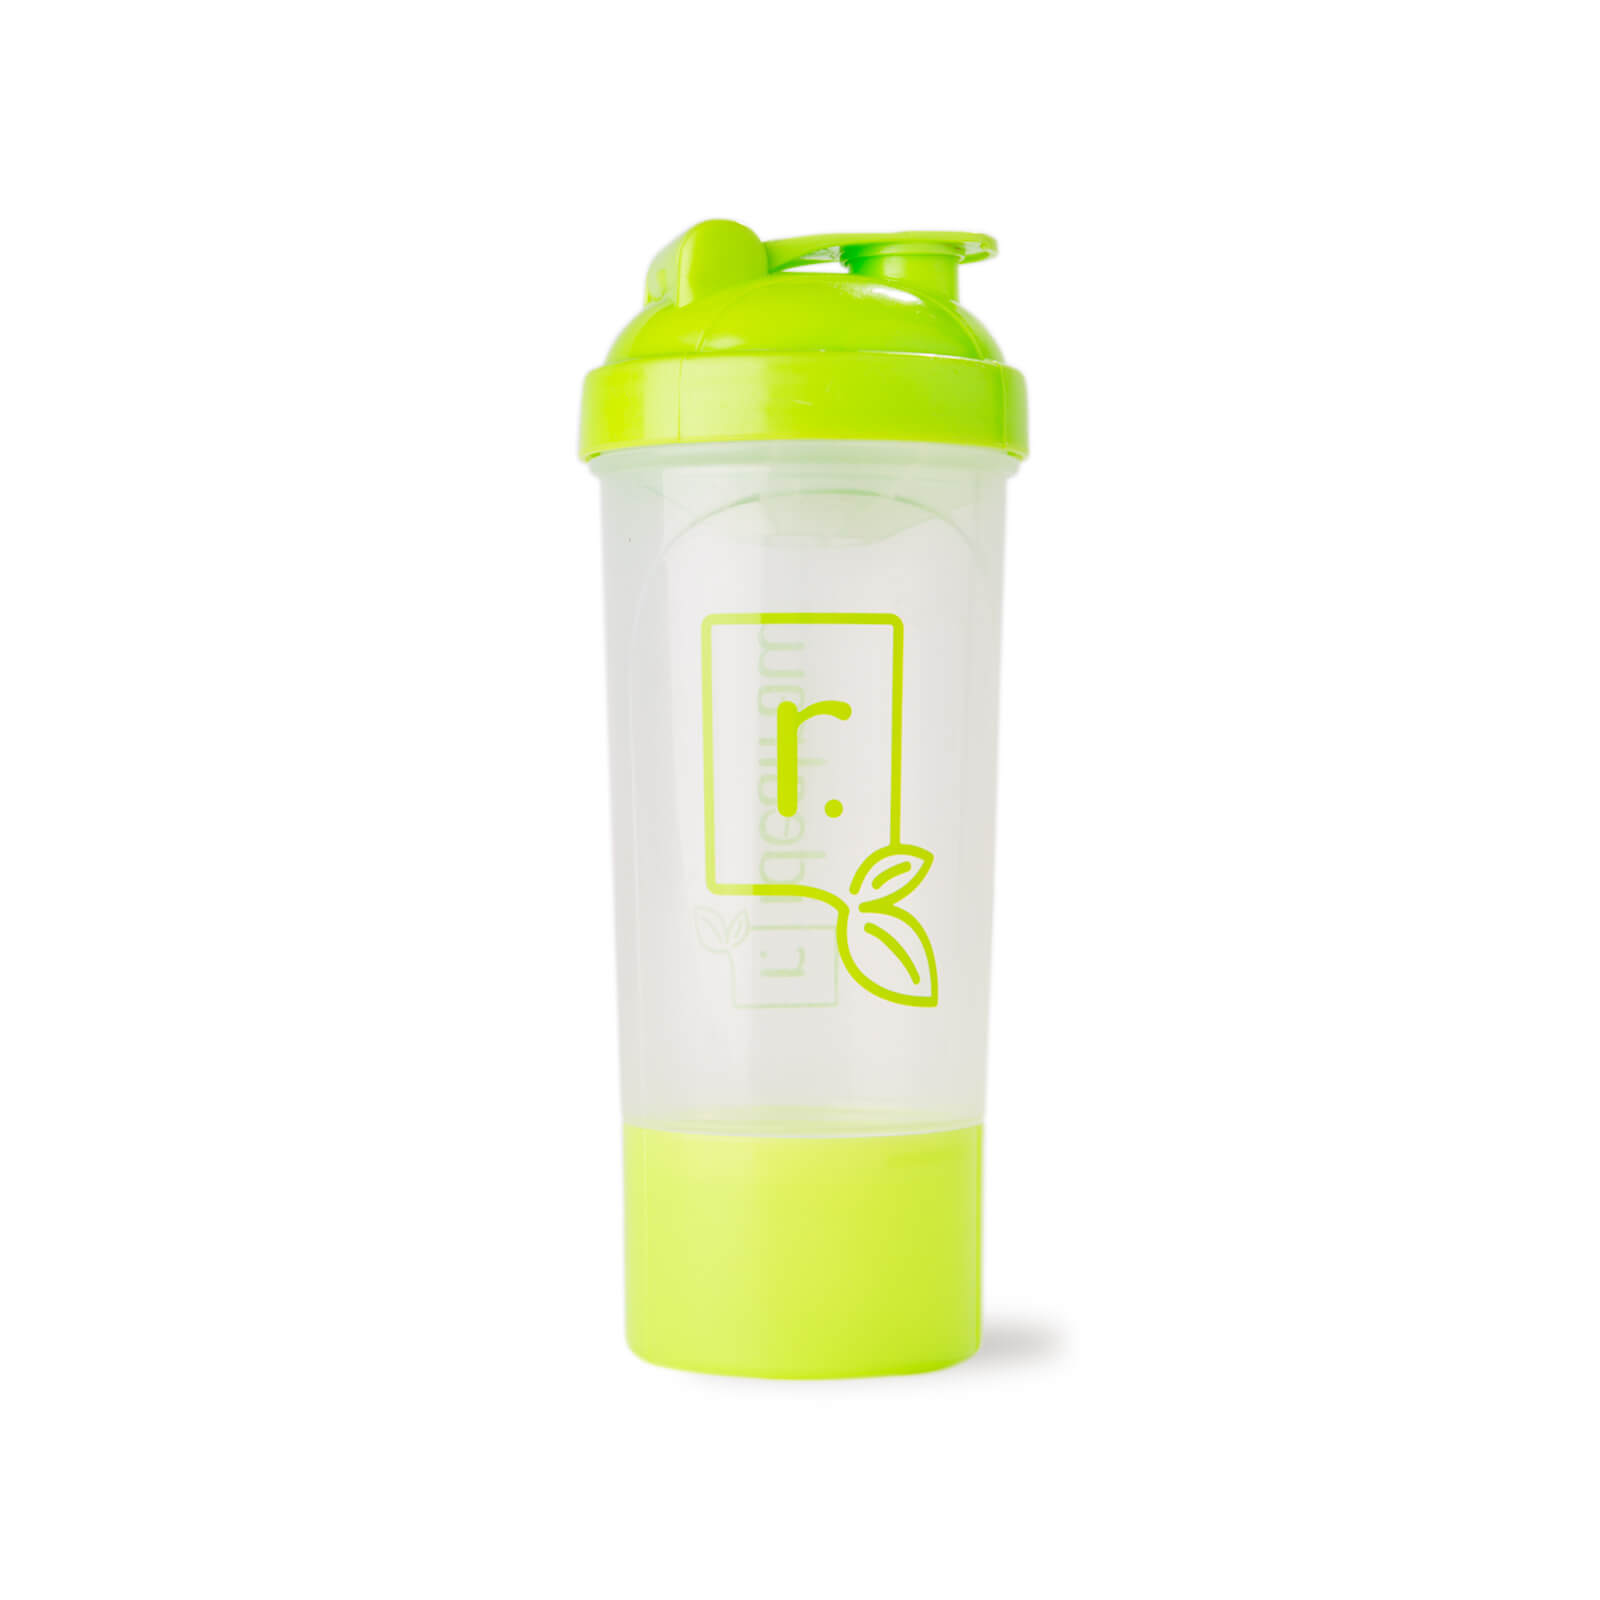 IdealRaw Shaker Bottle